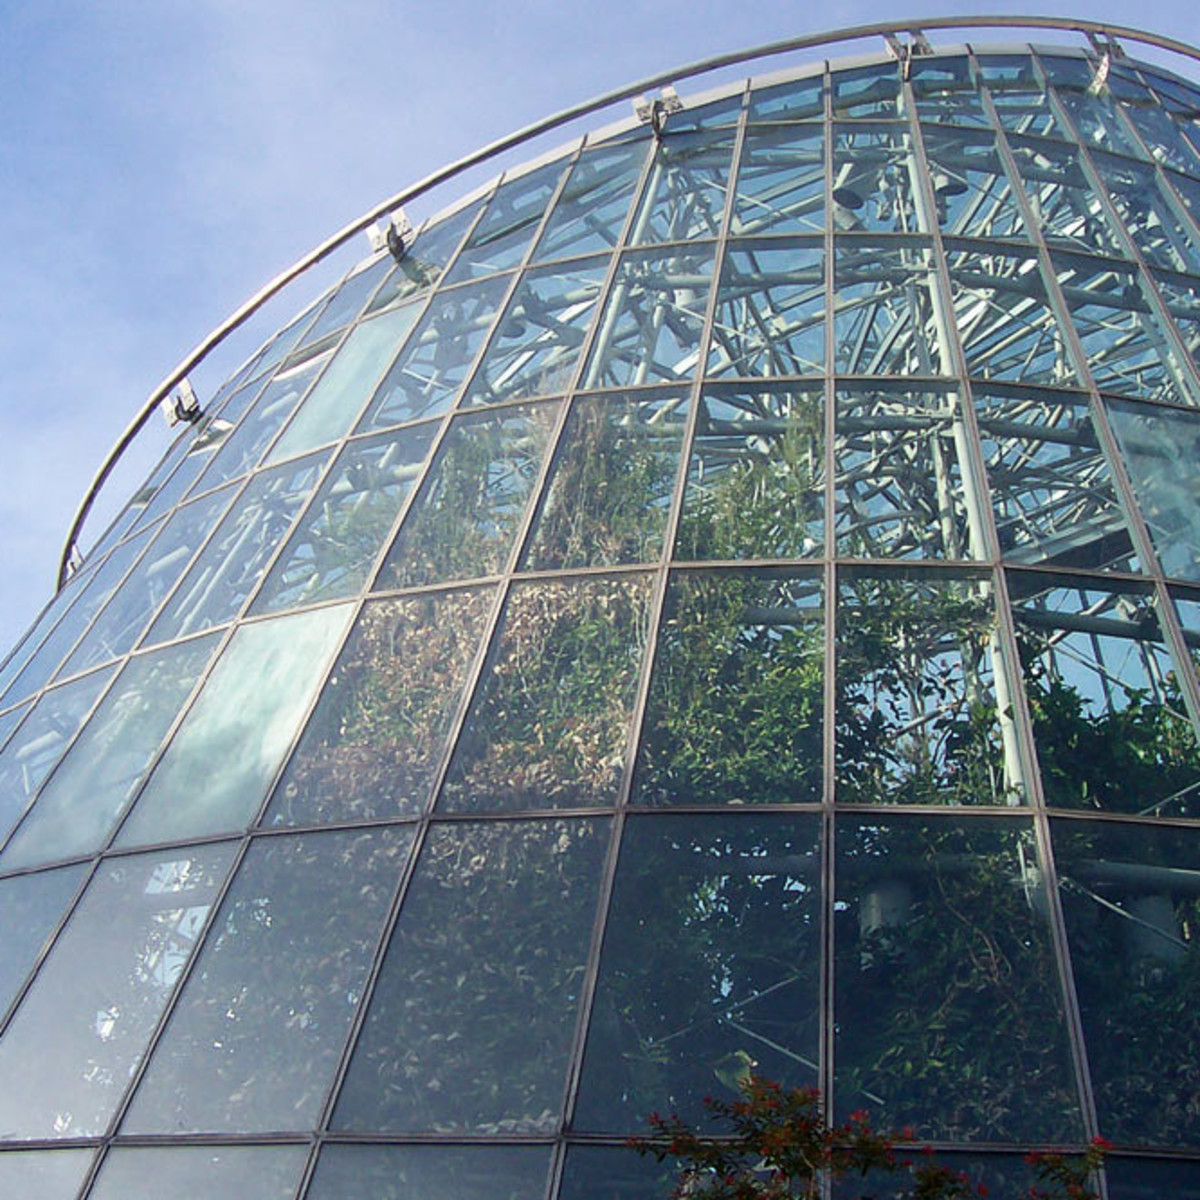 Places-A&E-Museum of Natural Science_butterfly house